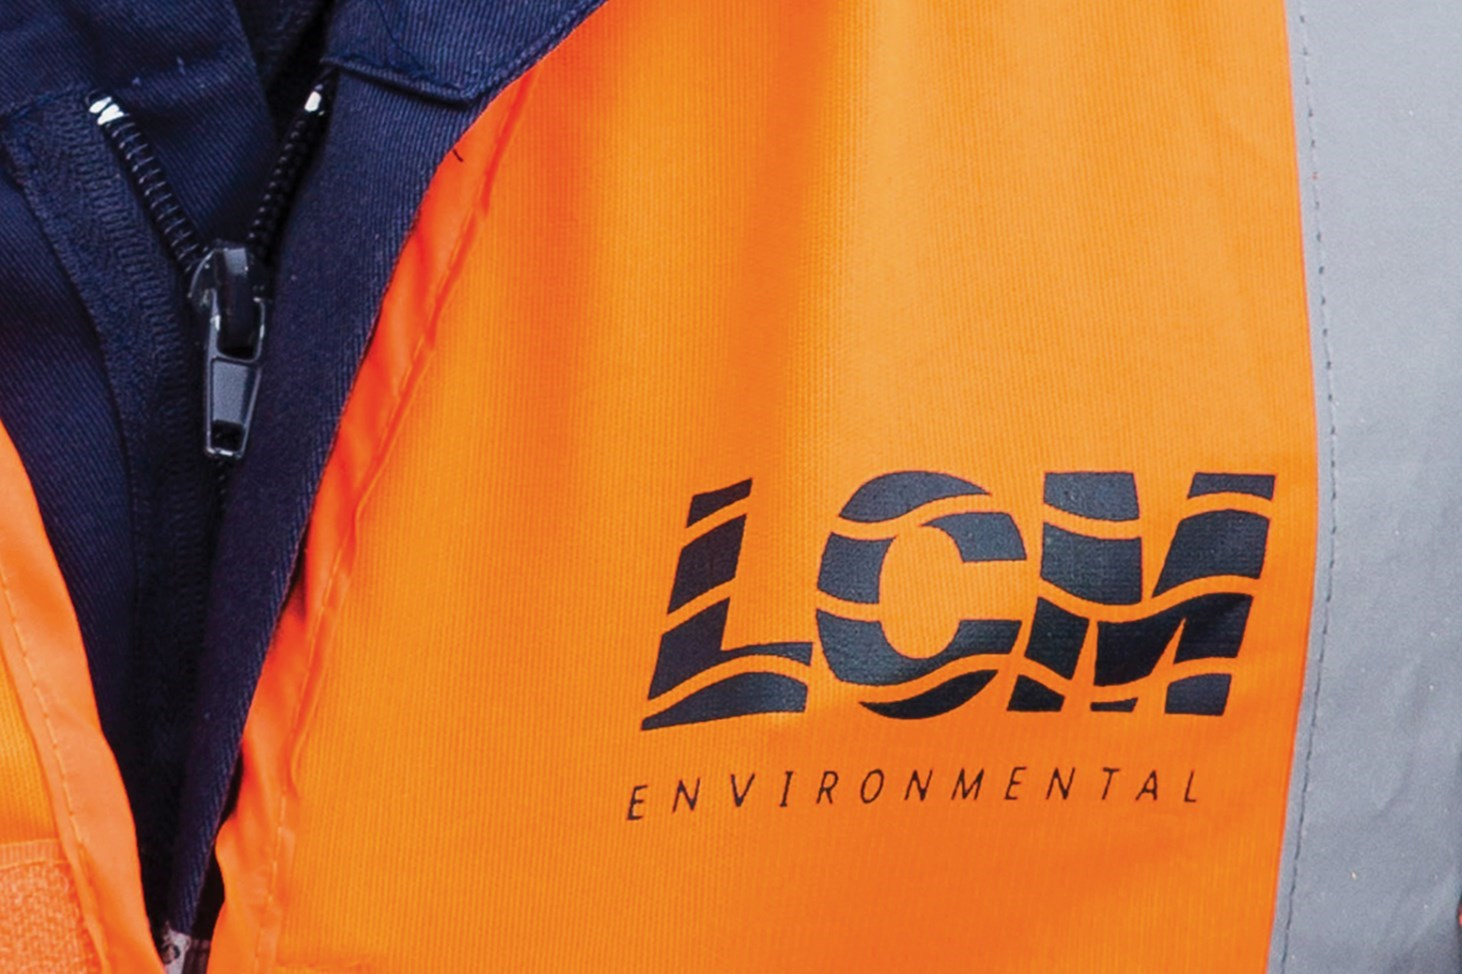 LCM, Environmental, industrial, graphic design, Design79, Cornwall, Exeter, large scale, artwork,  clothing, logo, branding